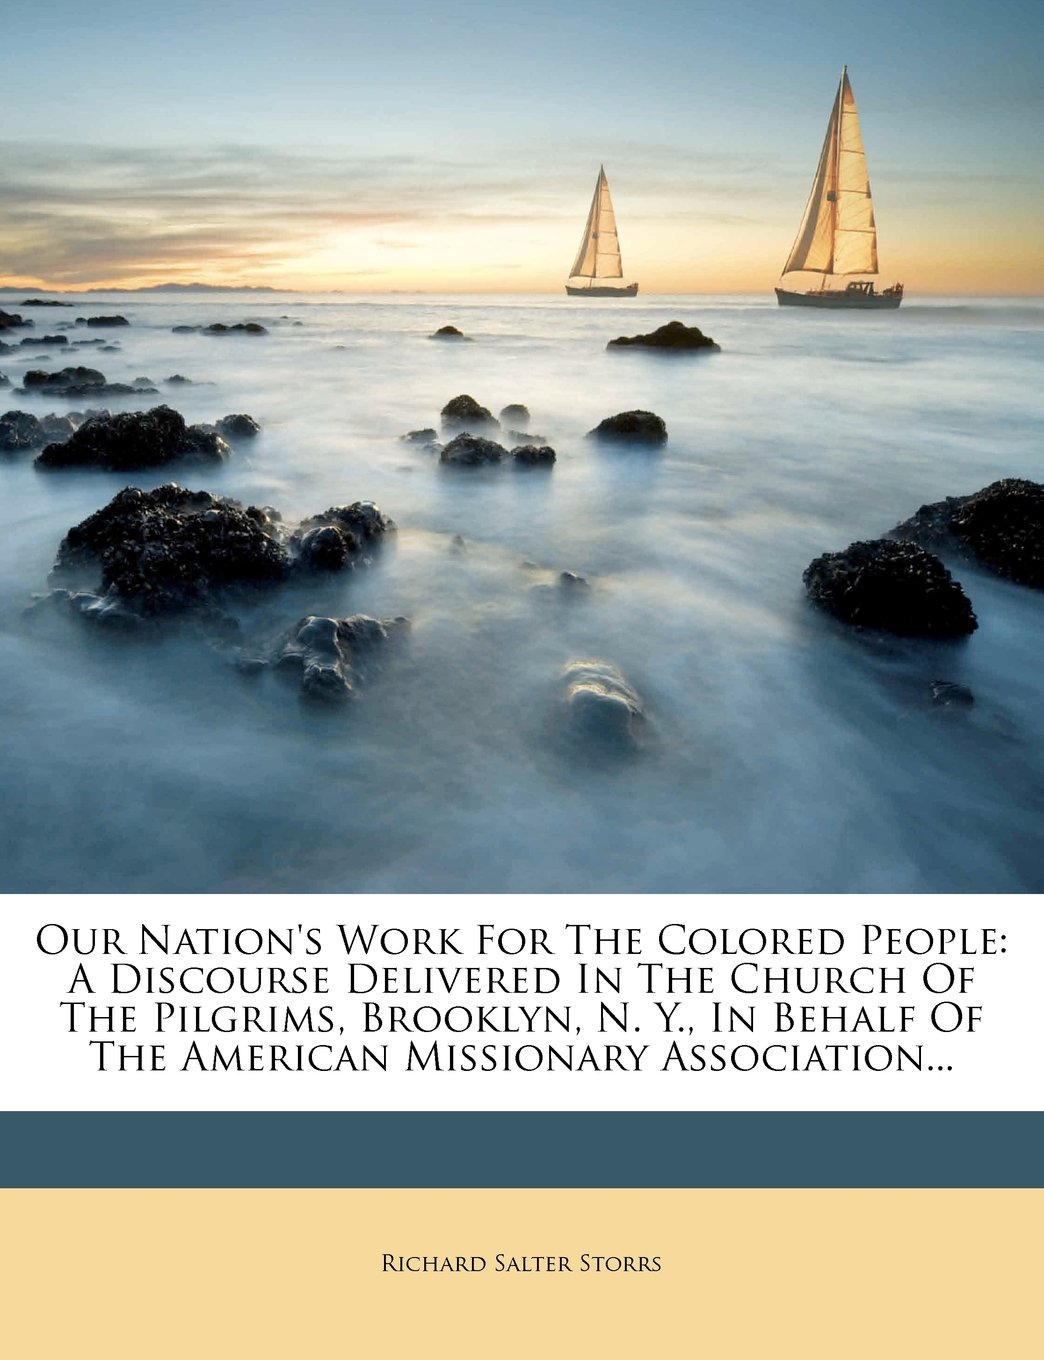 Read Online Our Nation's Work for the Colored People: A Discourse Delivered in the Church of the Pilgrims, Brooklyn, N. Y., in Behalf of the American Missionary A pdf